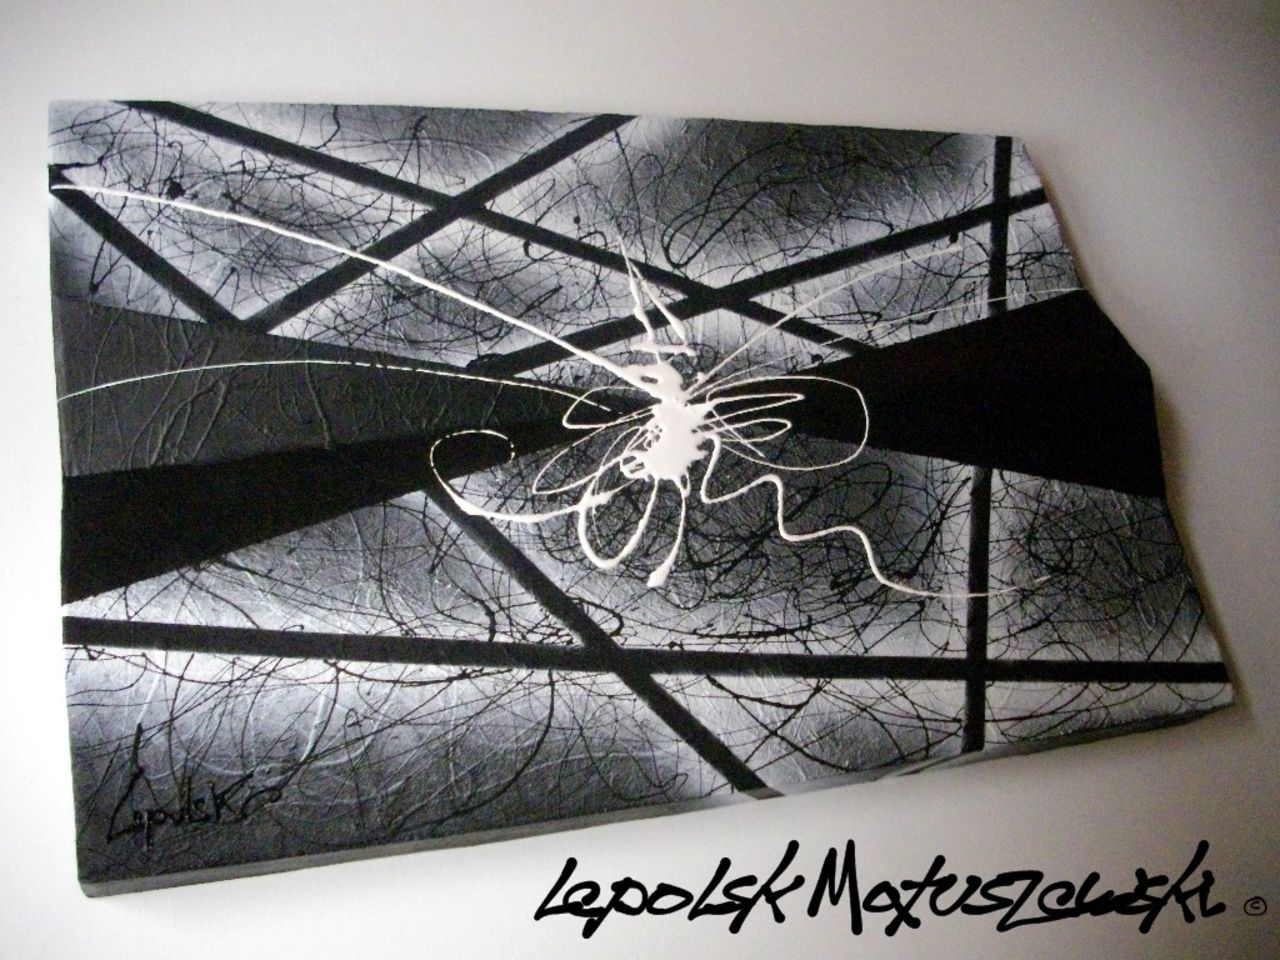 MISTER K  (Lepolsk Matuszewski) Prototype 90 or Black Light  expressionnisme abstrait